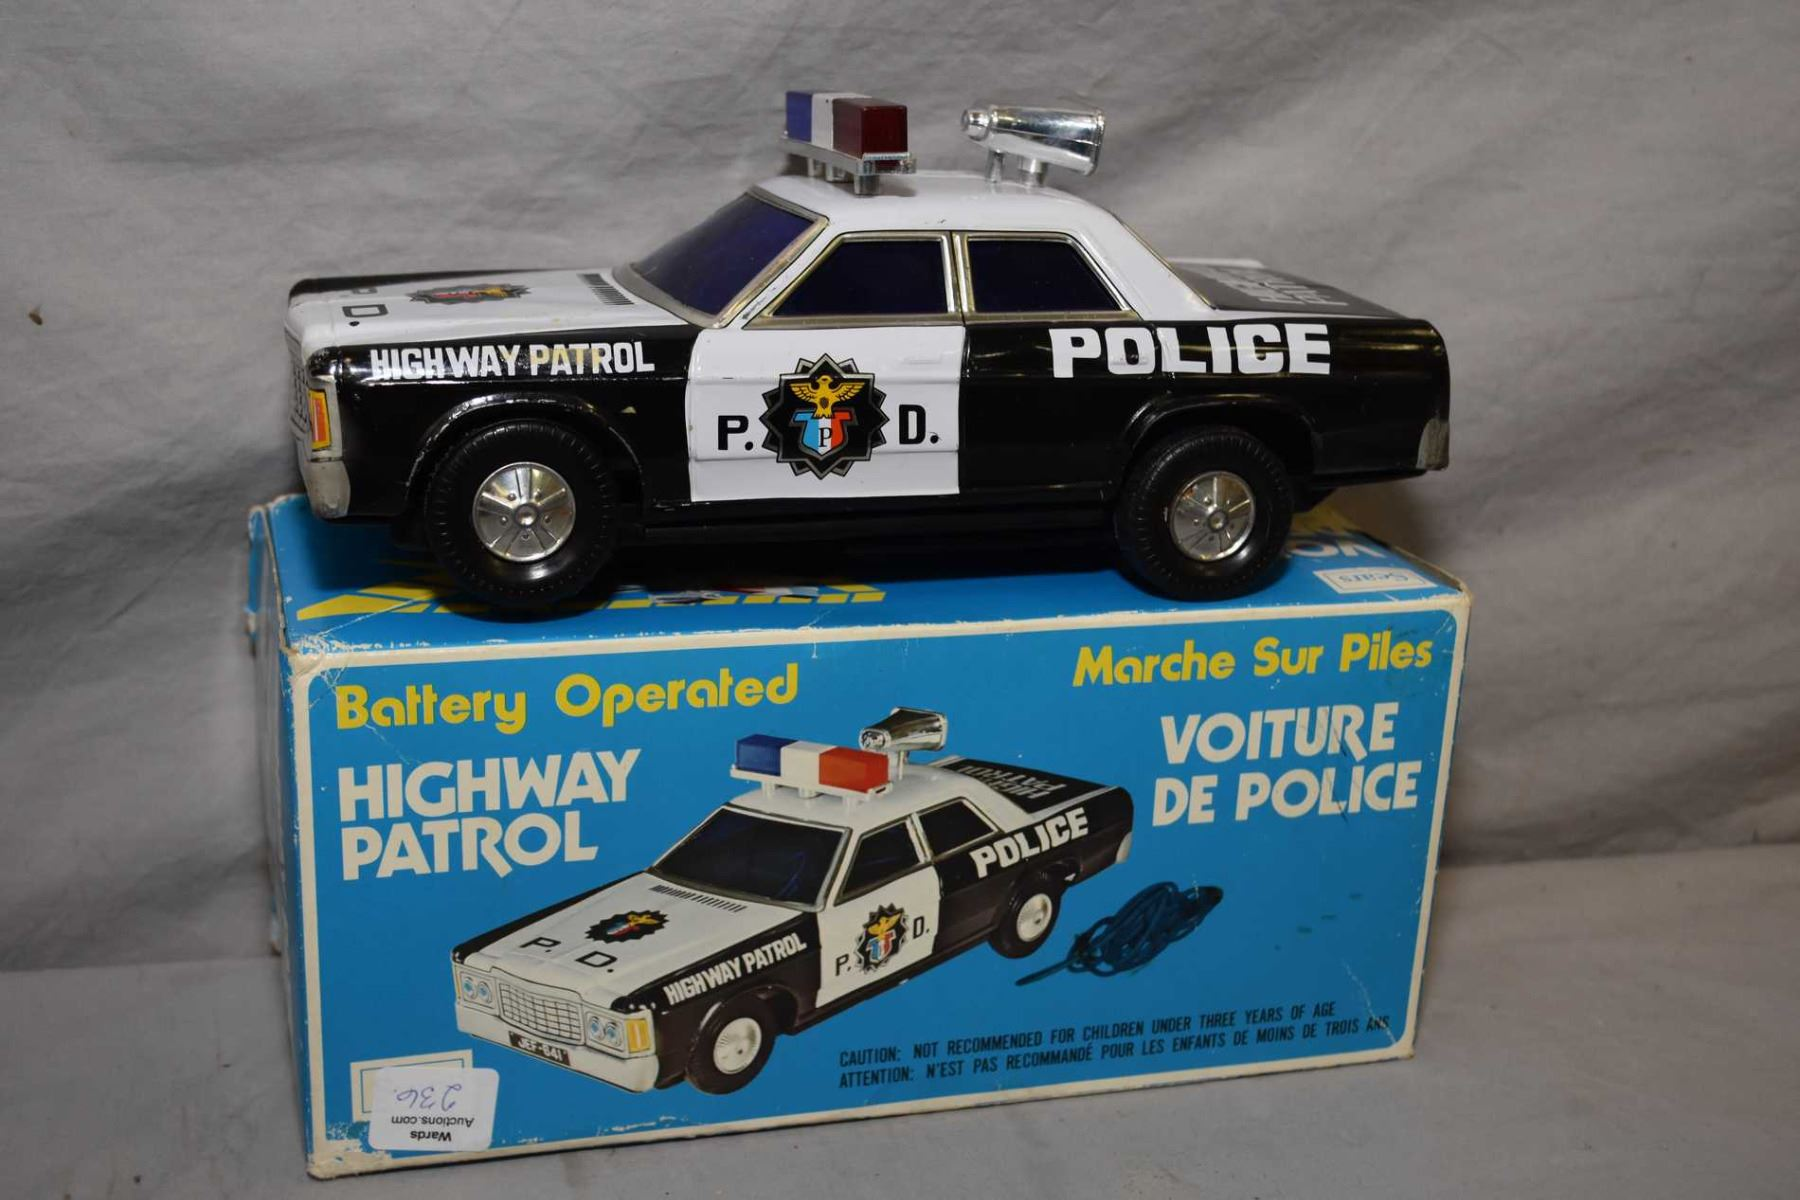 hight resolution of image 1 vintage sears highway patrol car with realistic alarm sound flashing lights